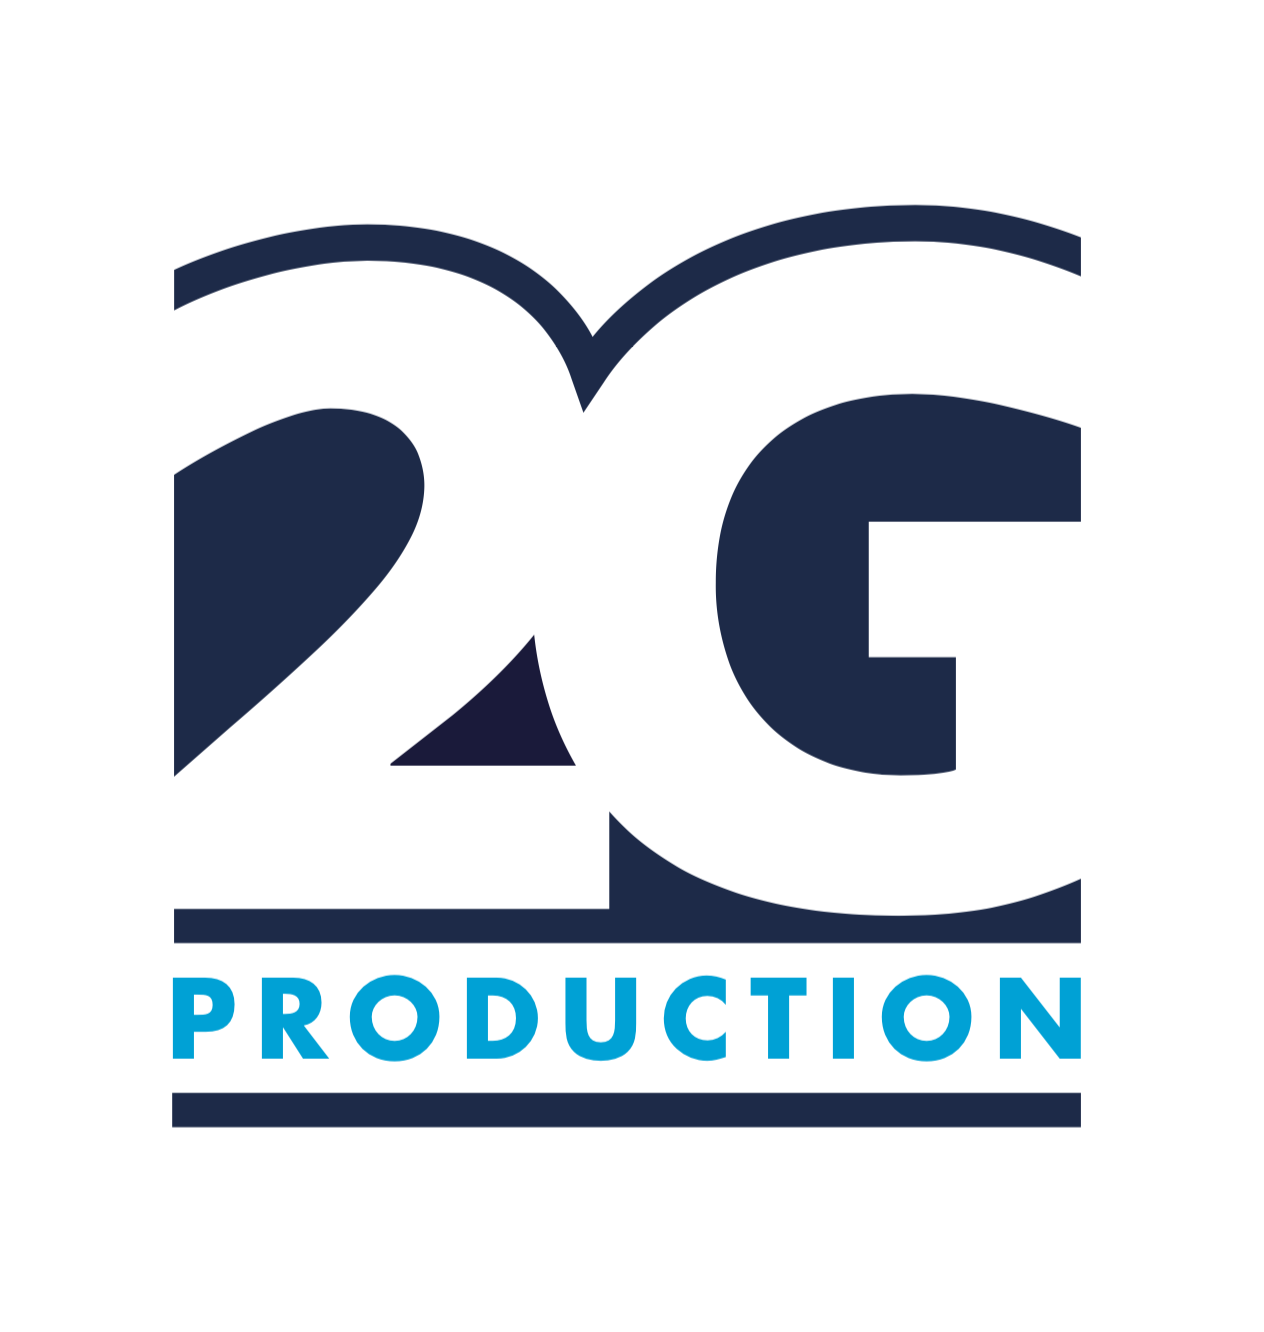 2G PRODUCTION